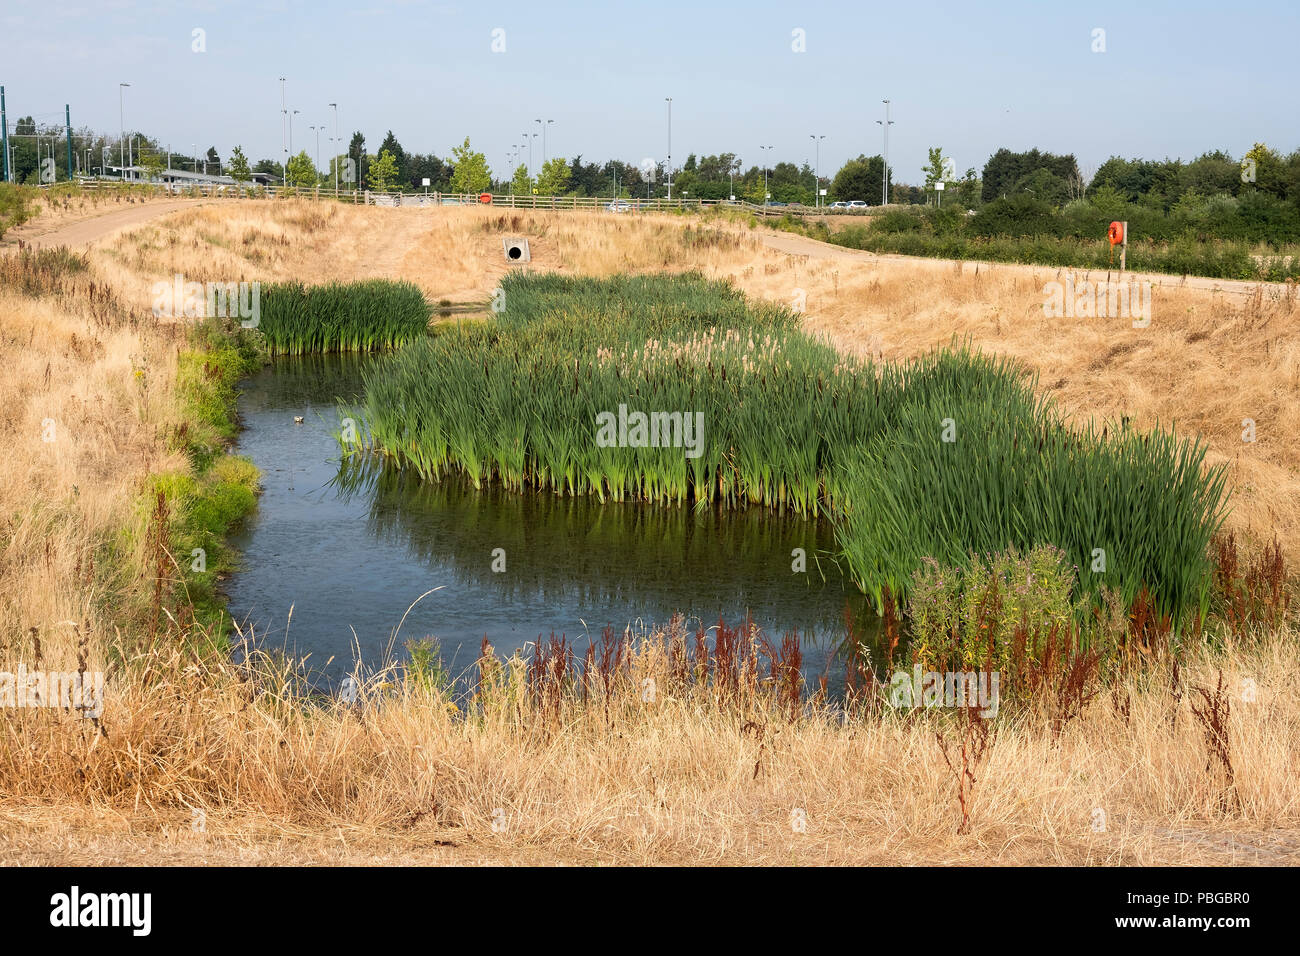 Oasis habitat in danger of drying out during the UK summer heatwave Stock Photo